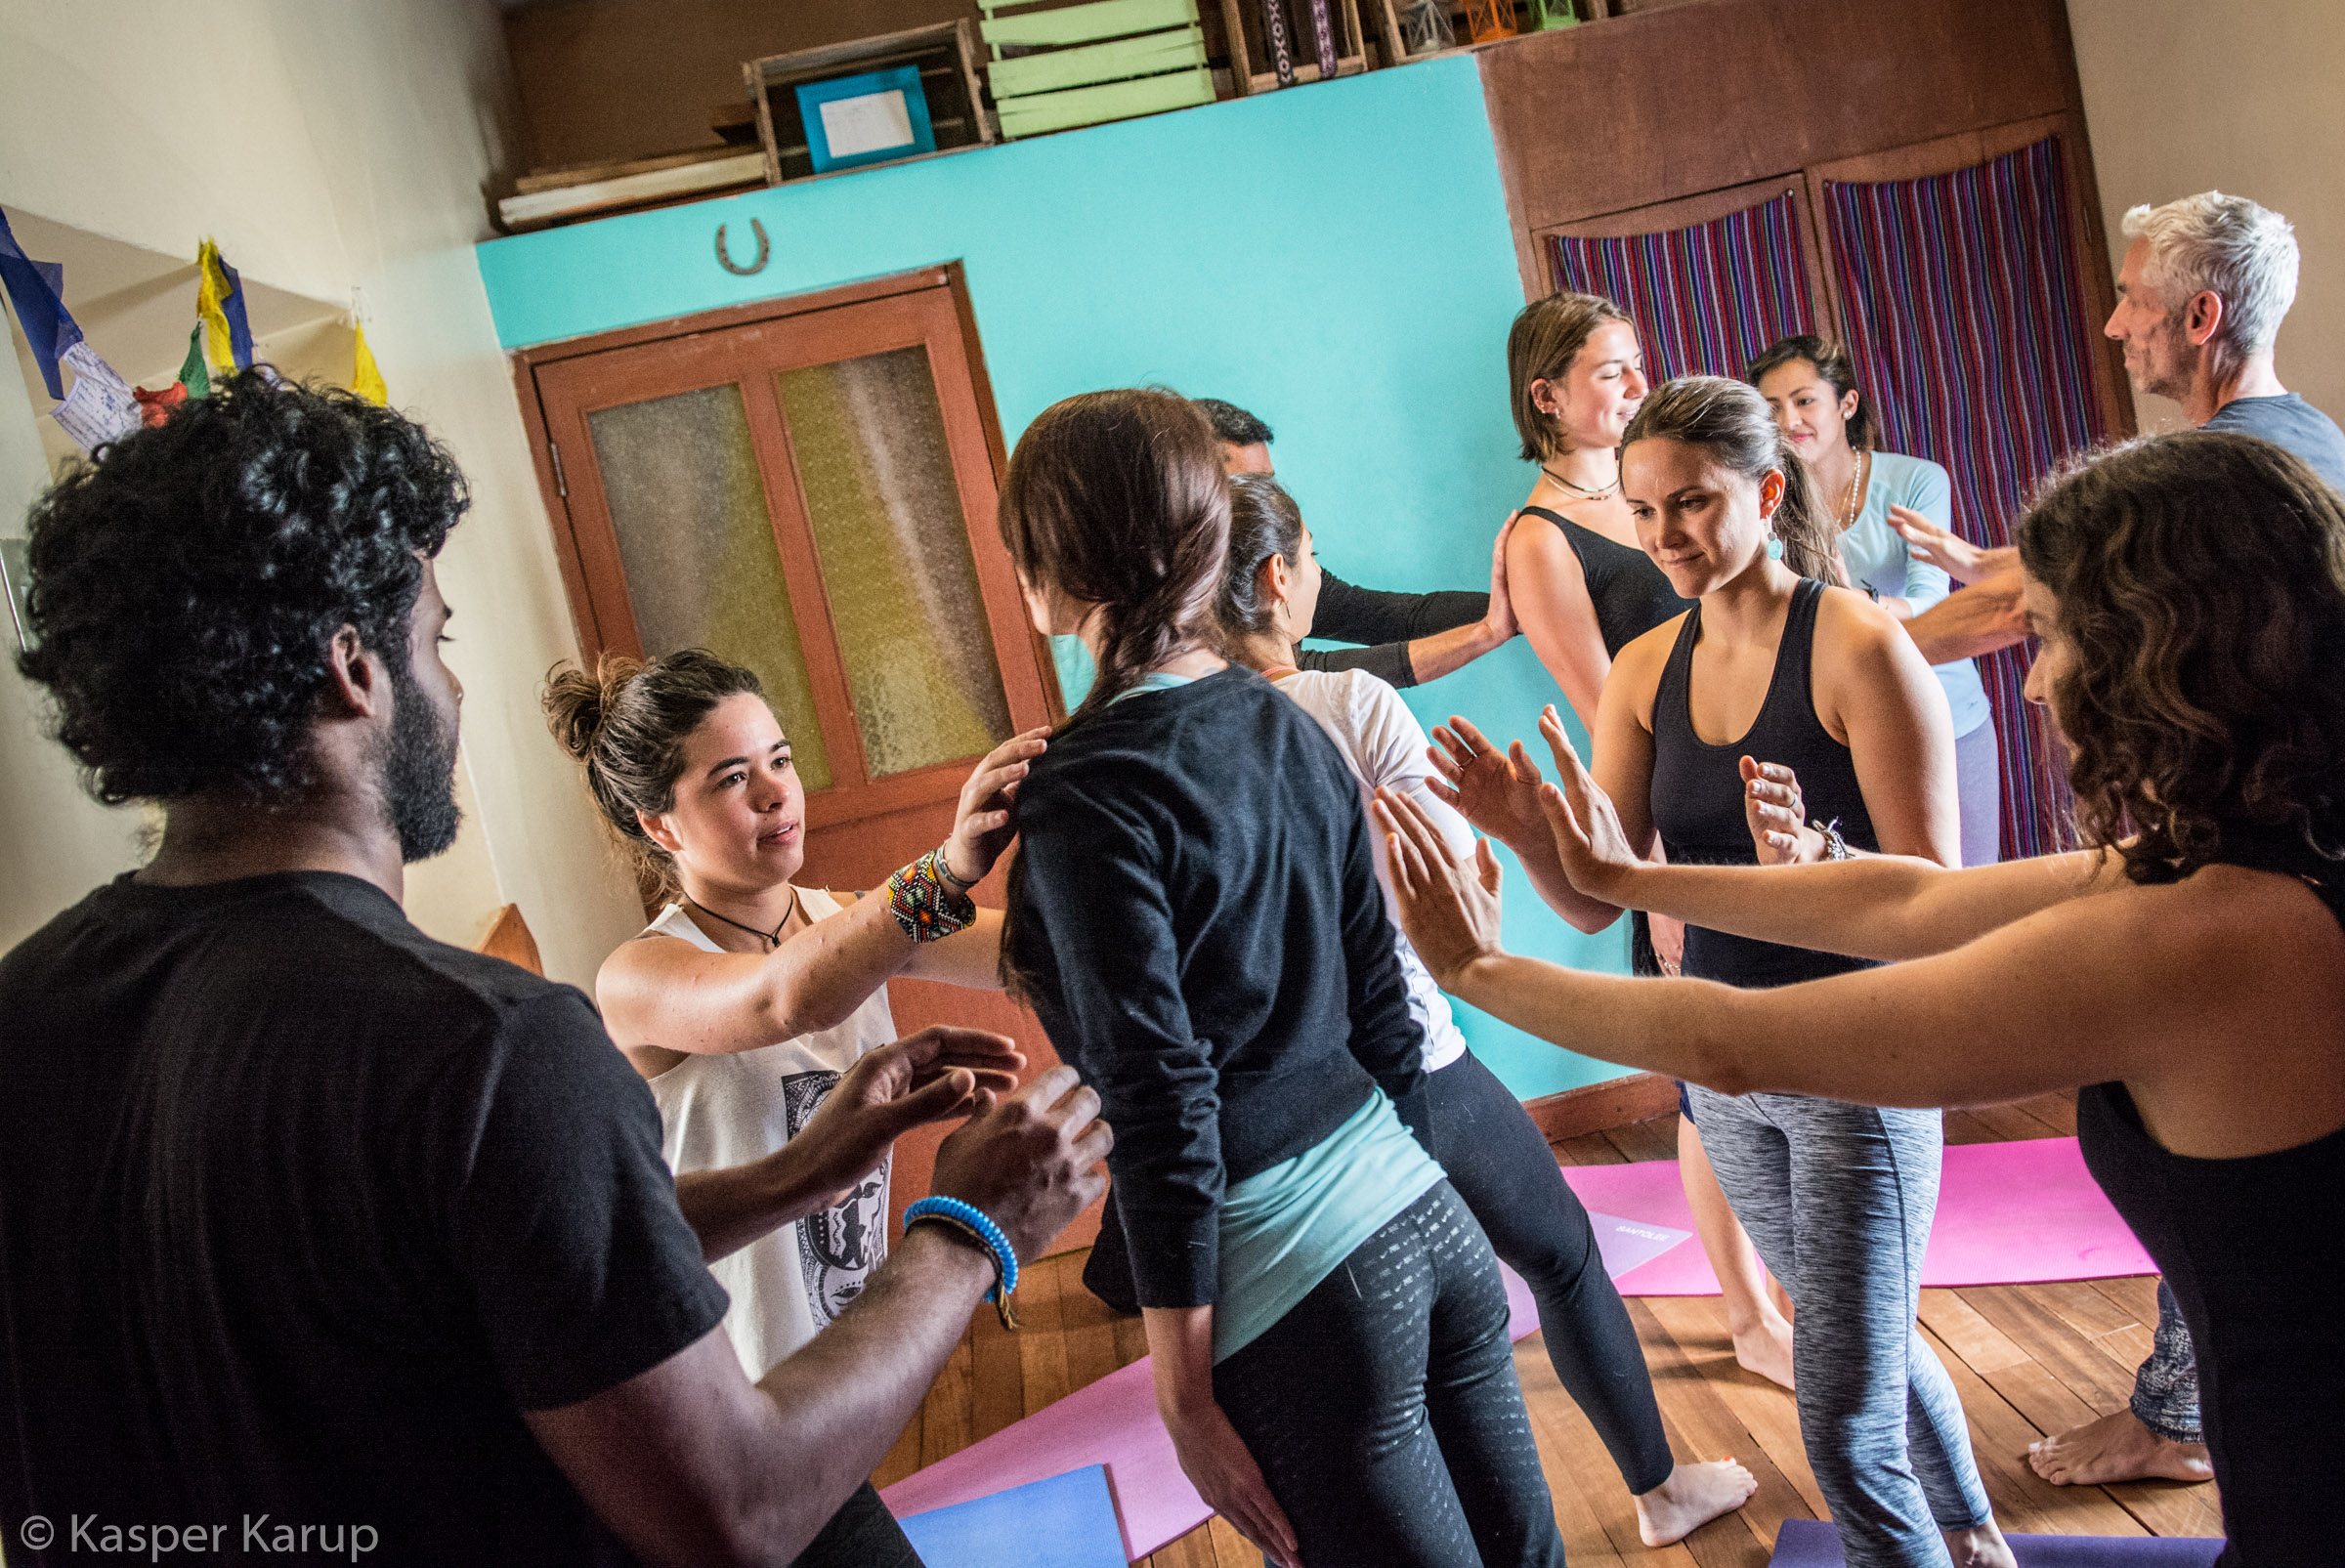 Acroyoga Yoga Room Cusco.jpg